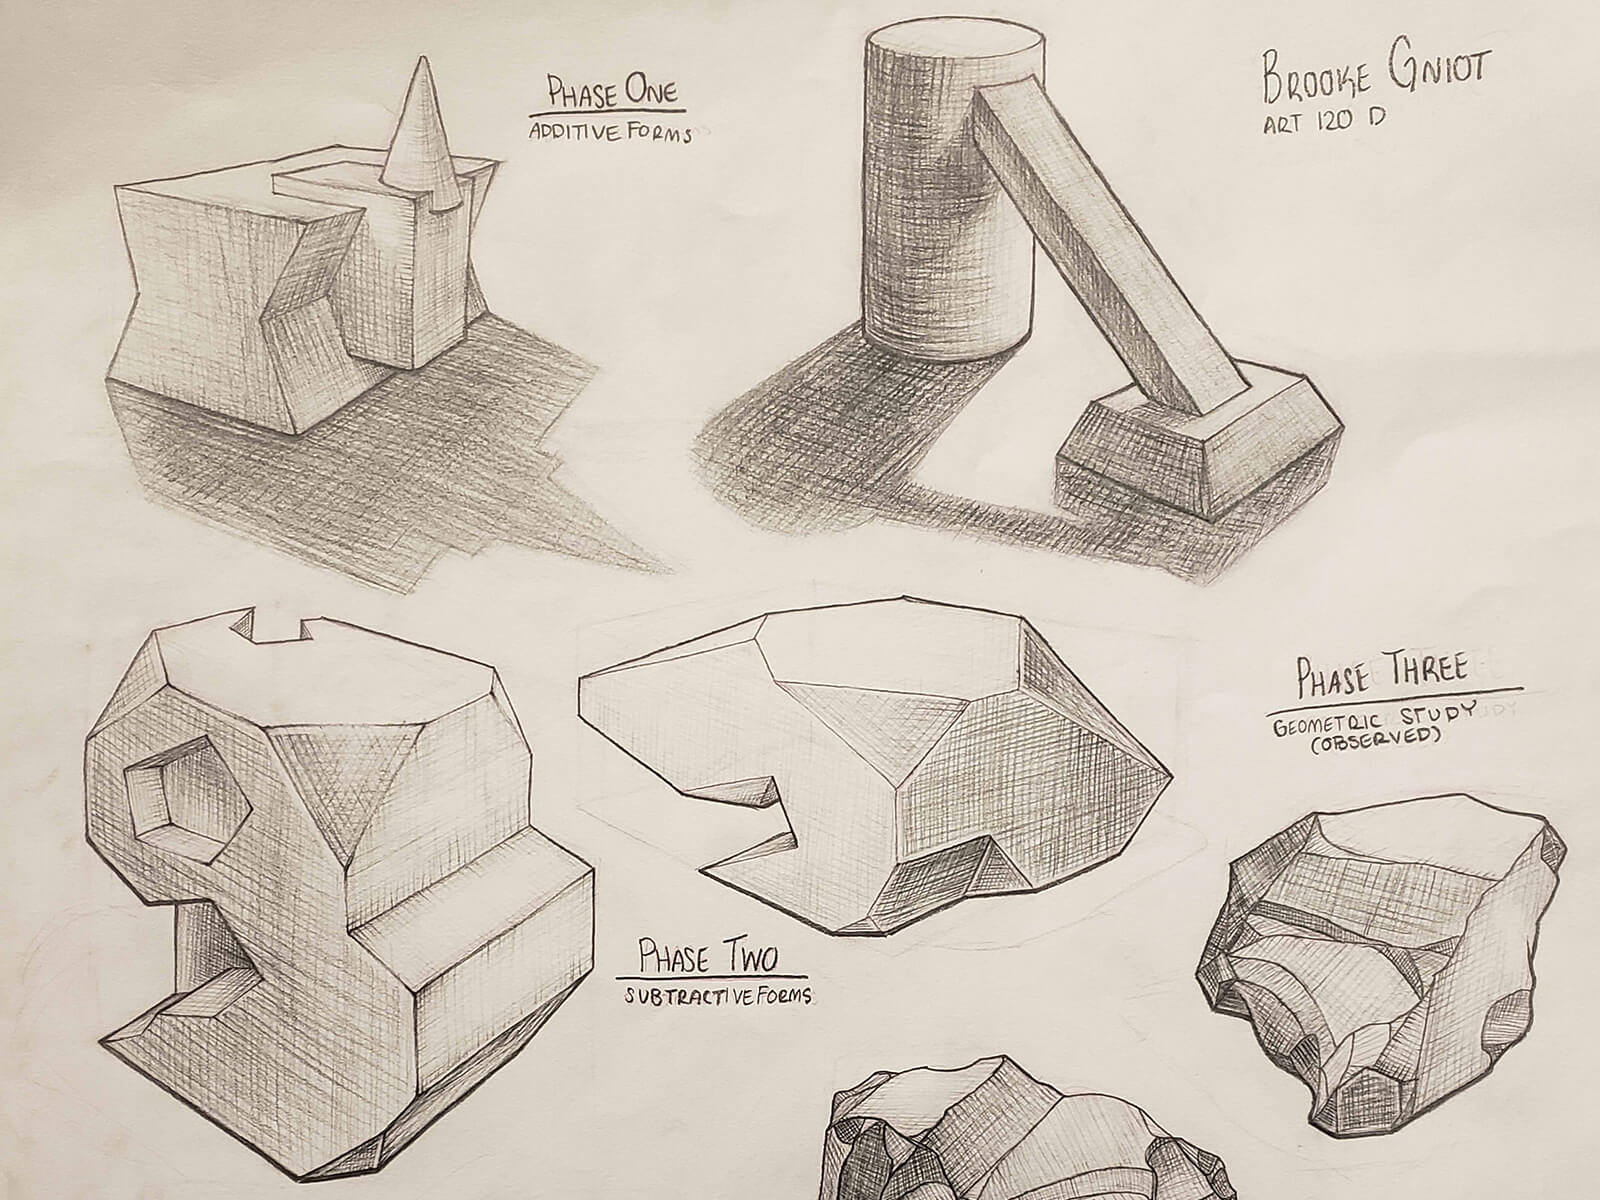 Several pencil drawings of rocks and geometric shapes